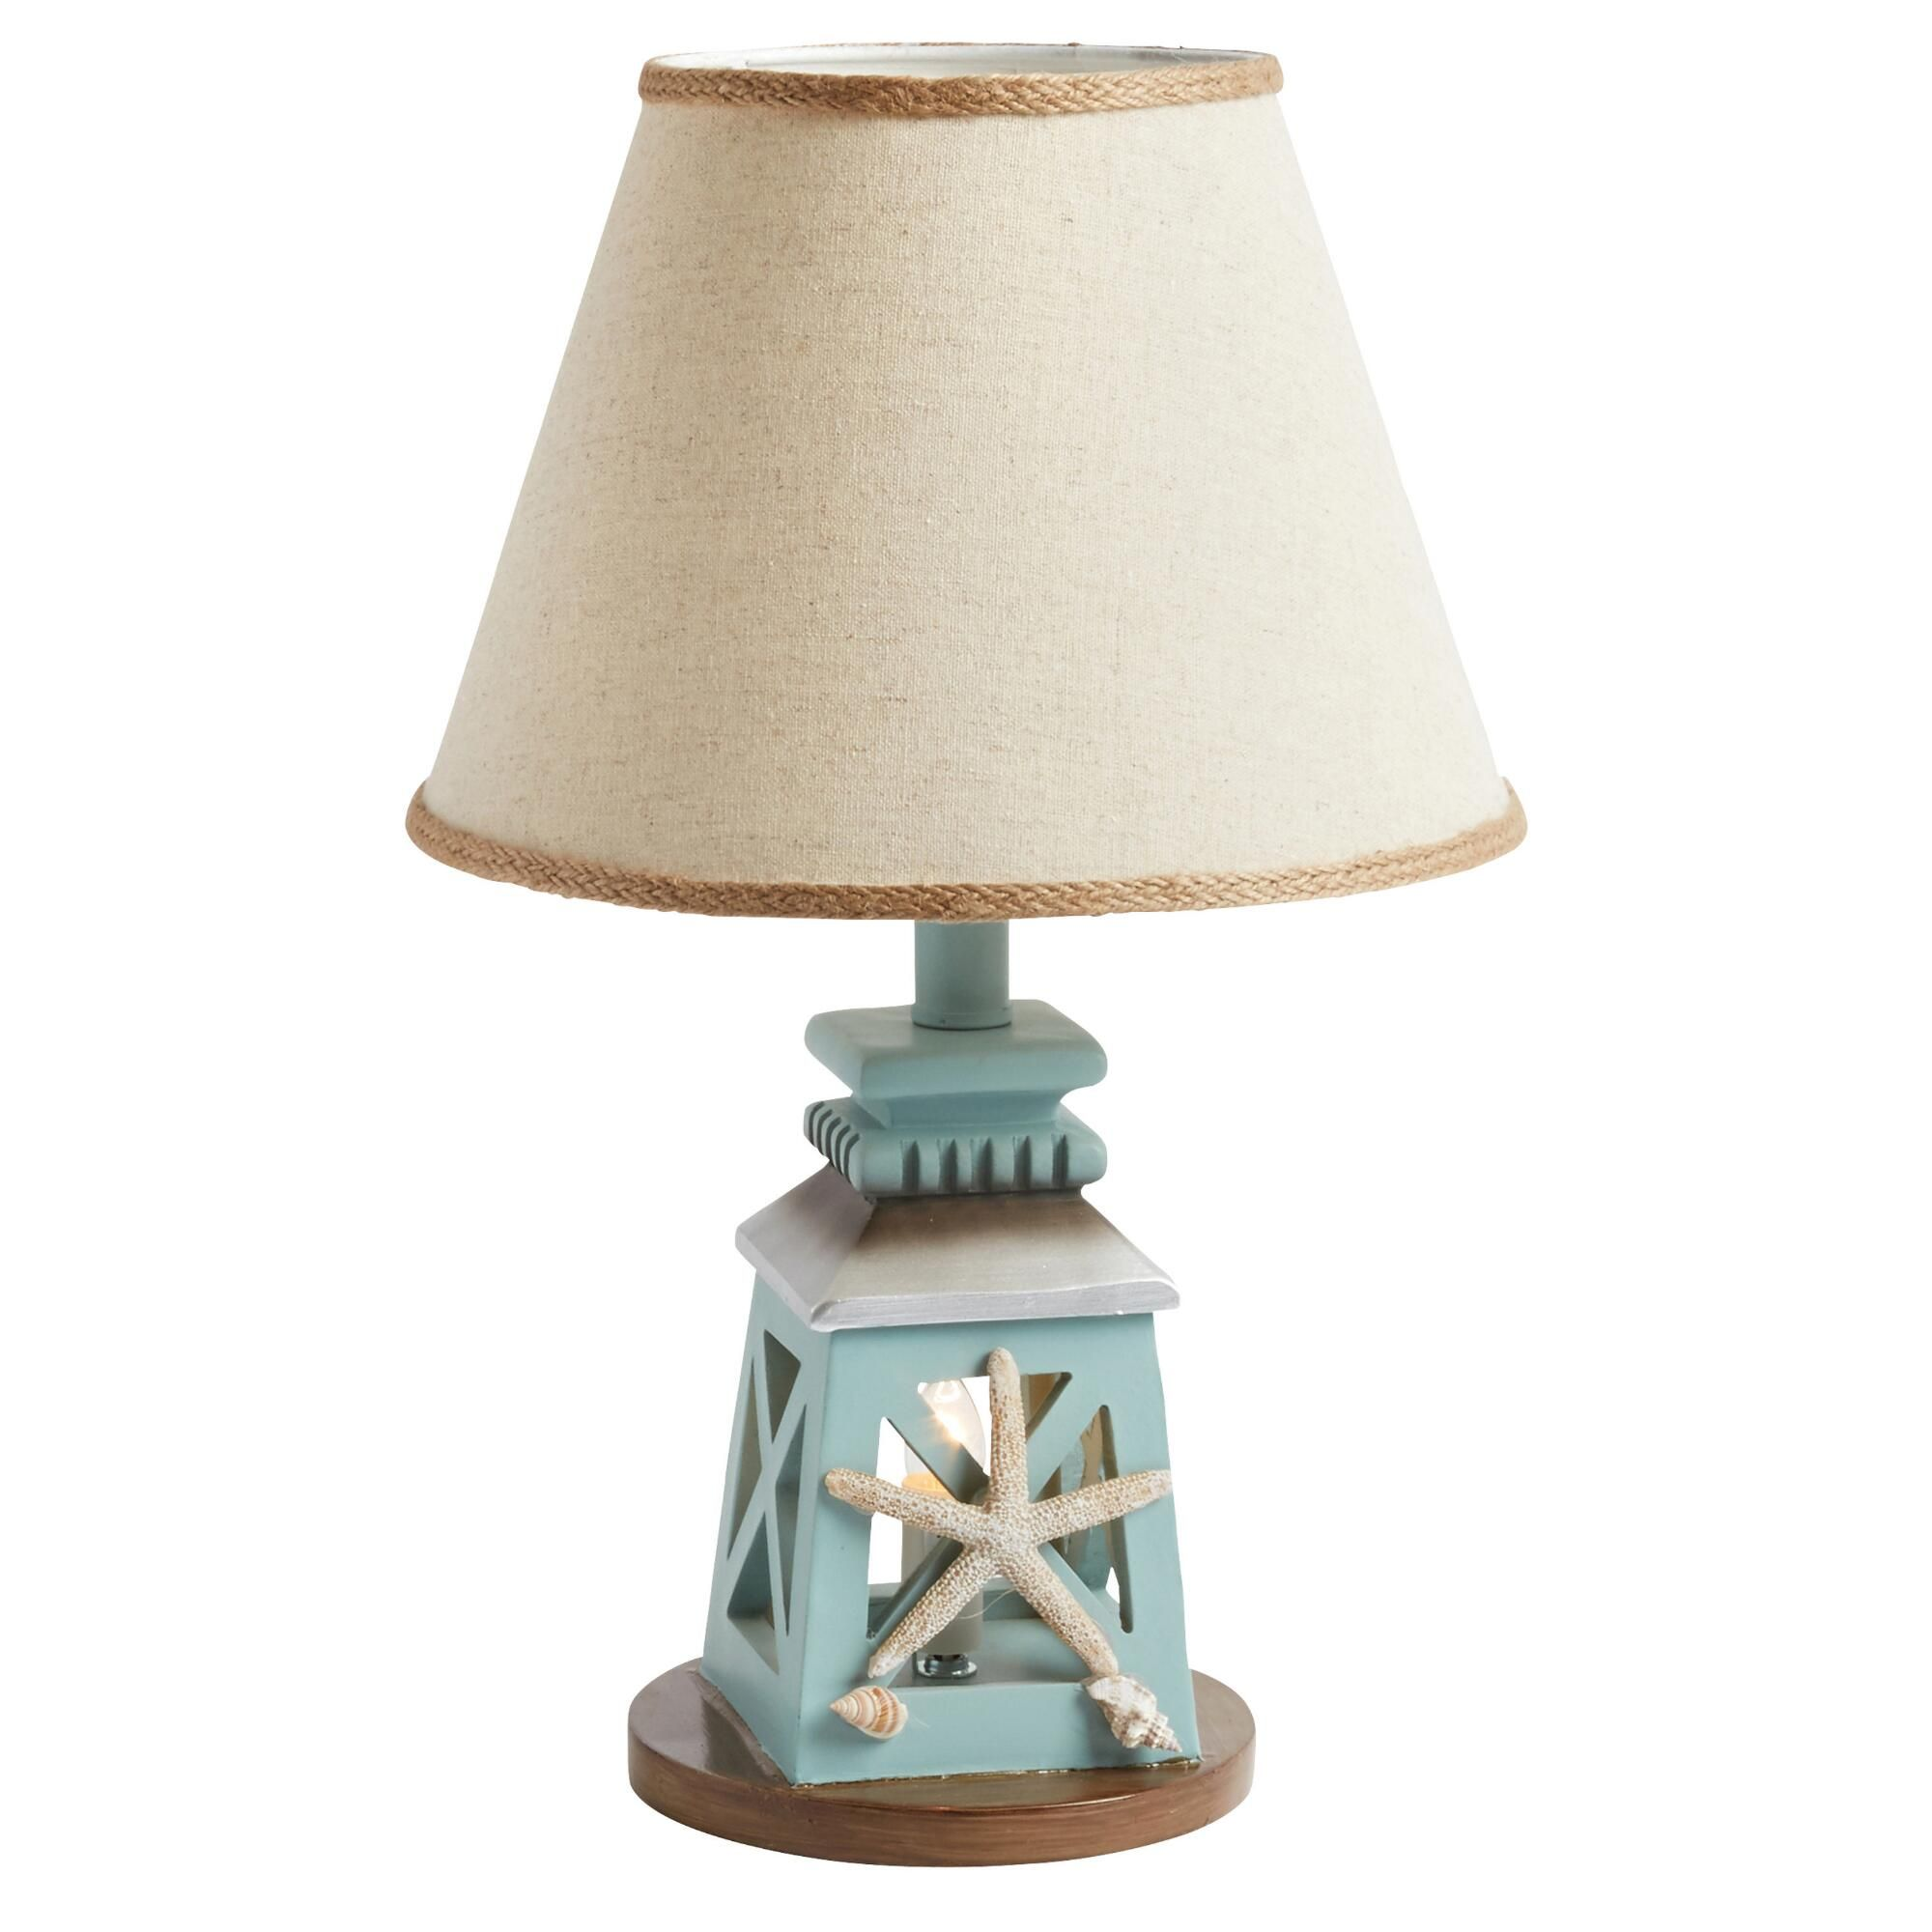 Catch Some Rays By The Beach With Our Ocean Themed Table Lamp